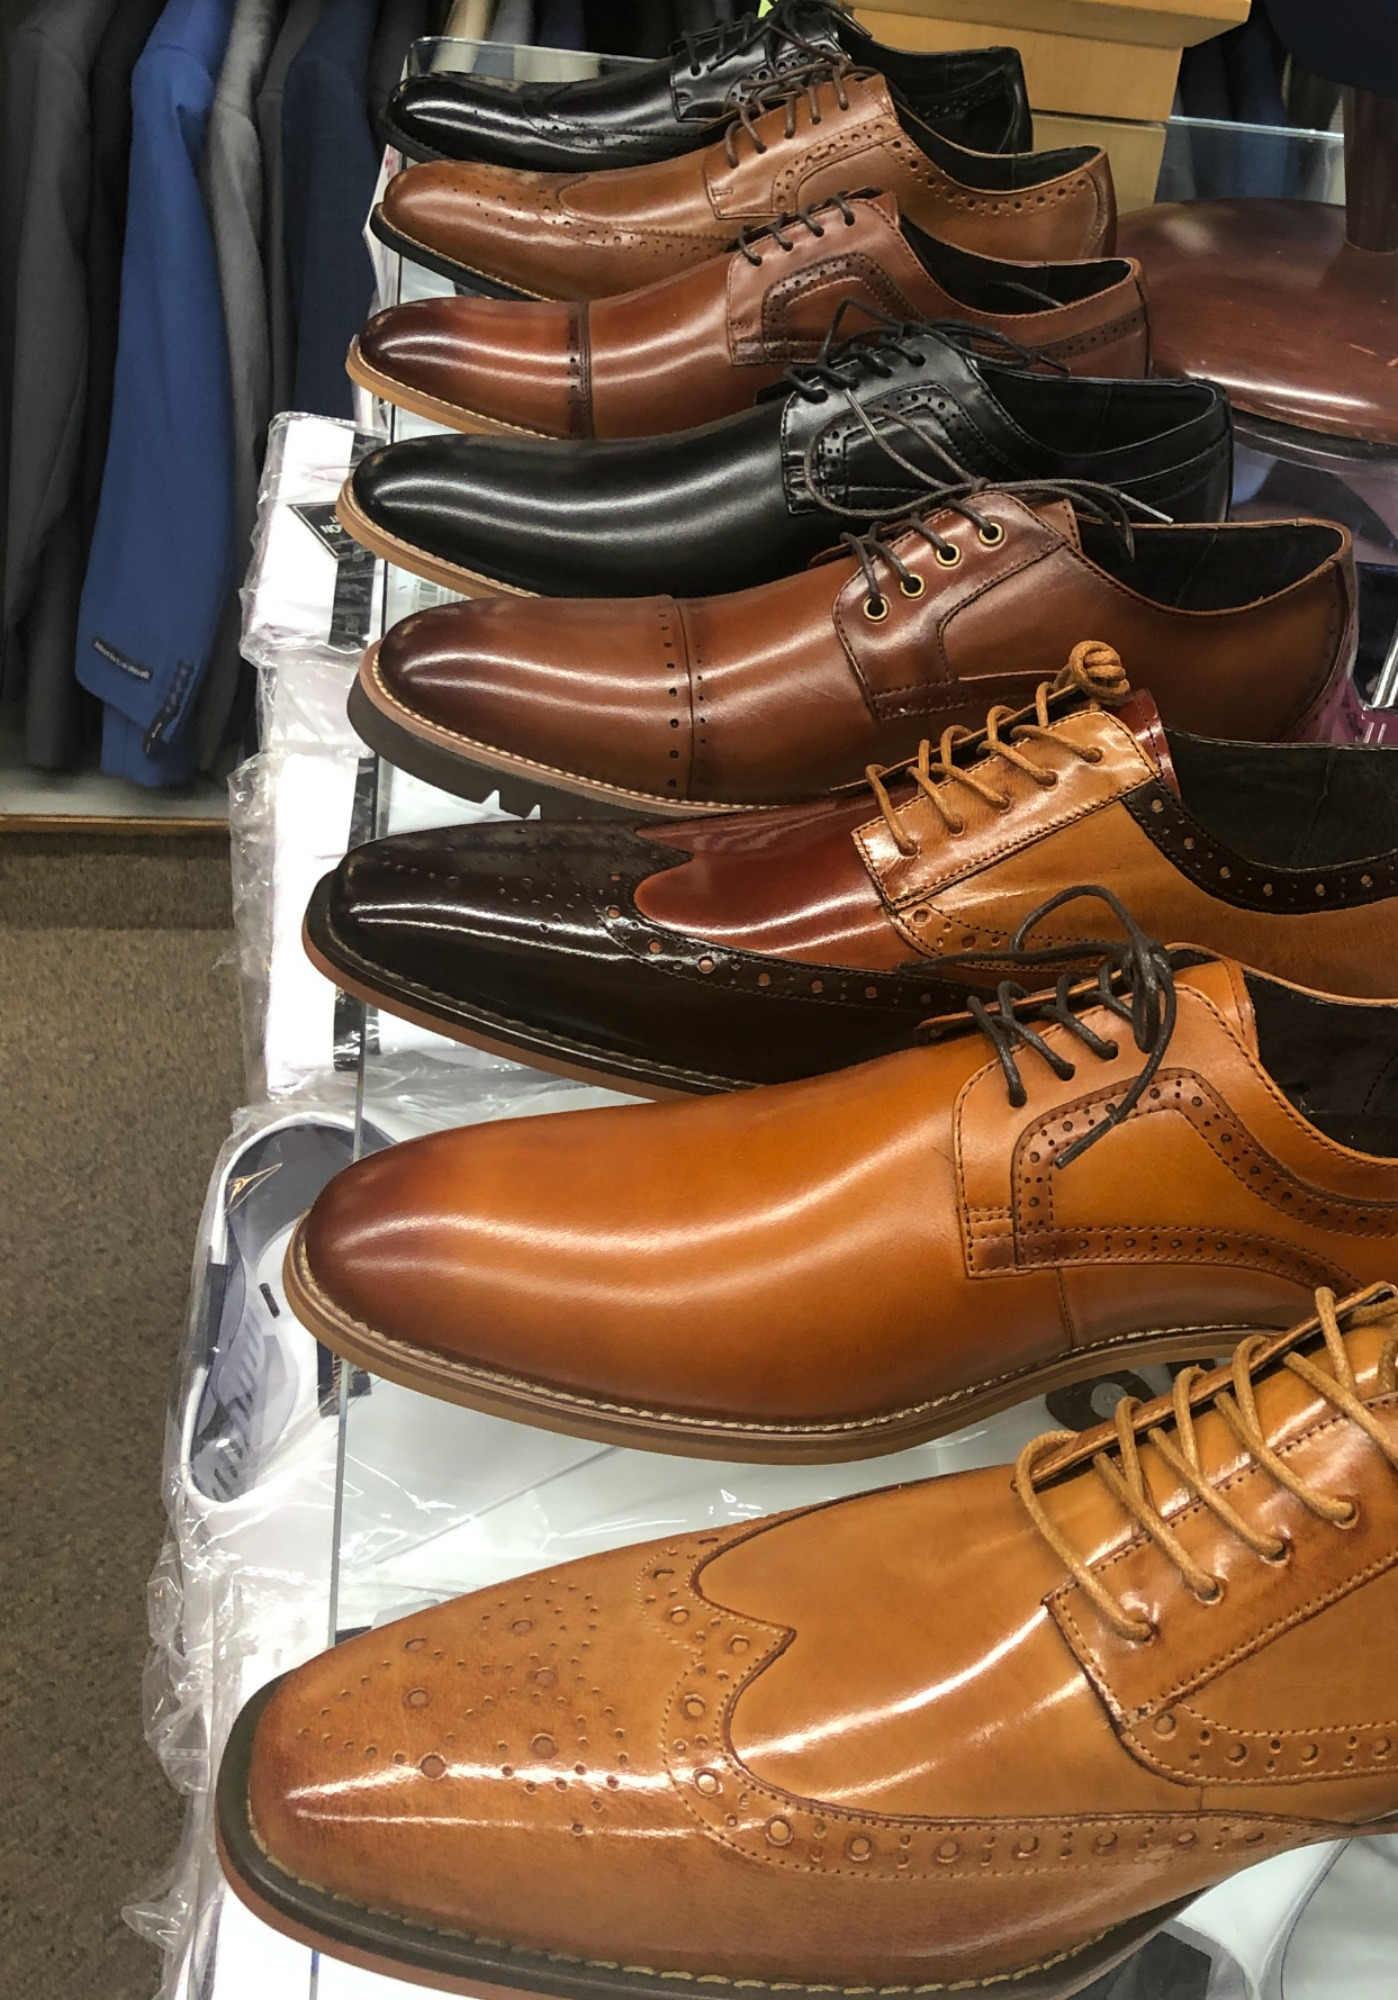 Shoes in all colors.